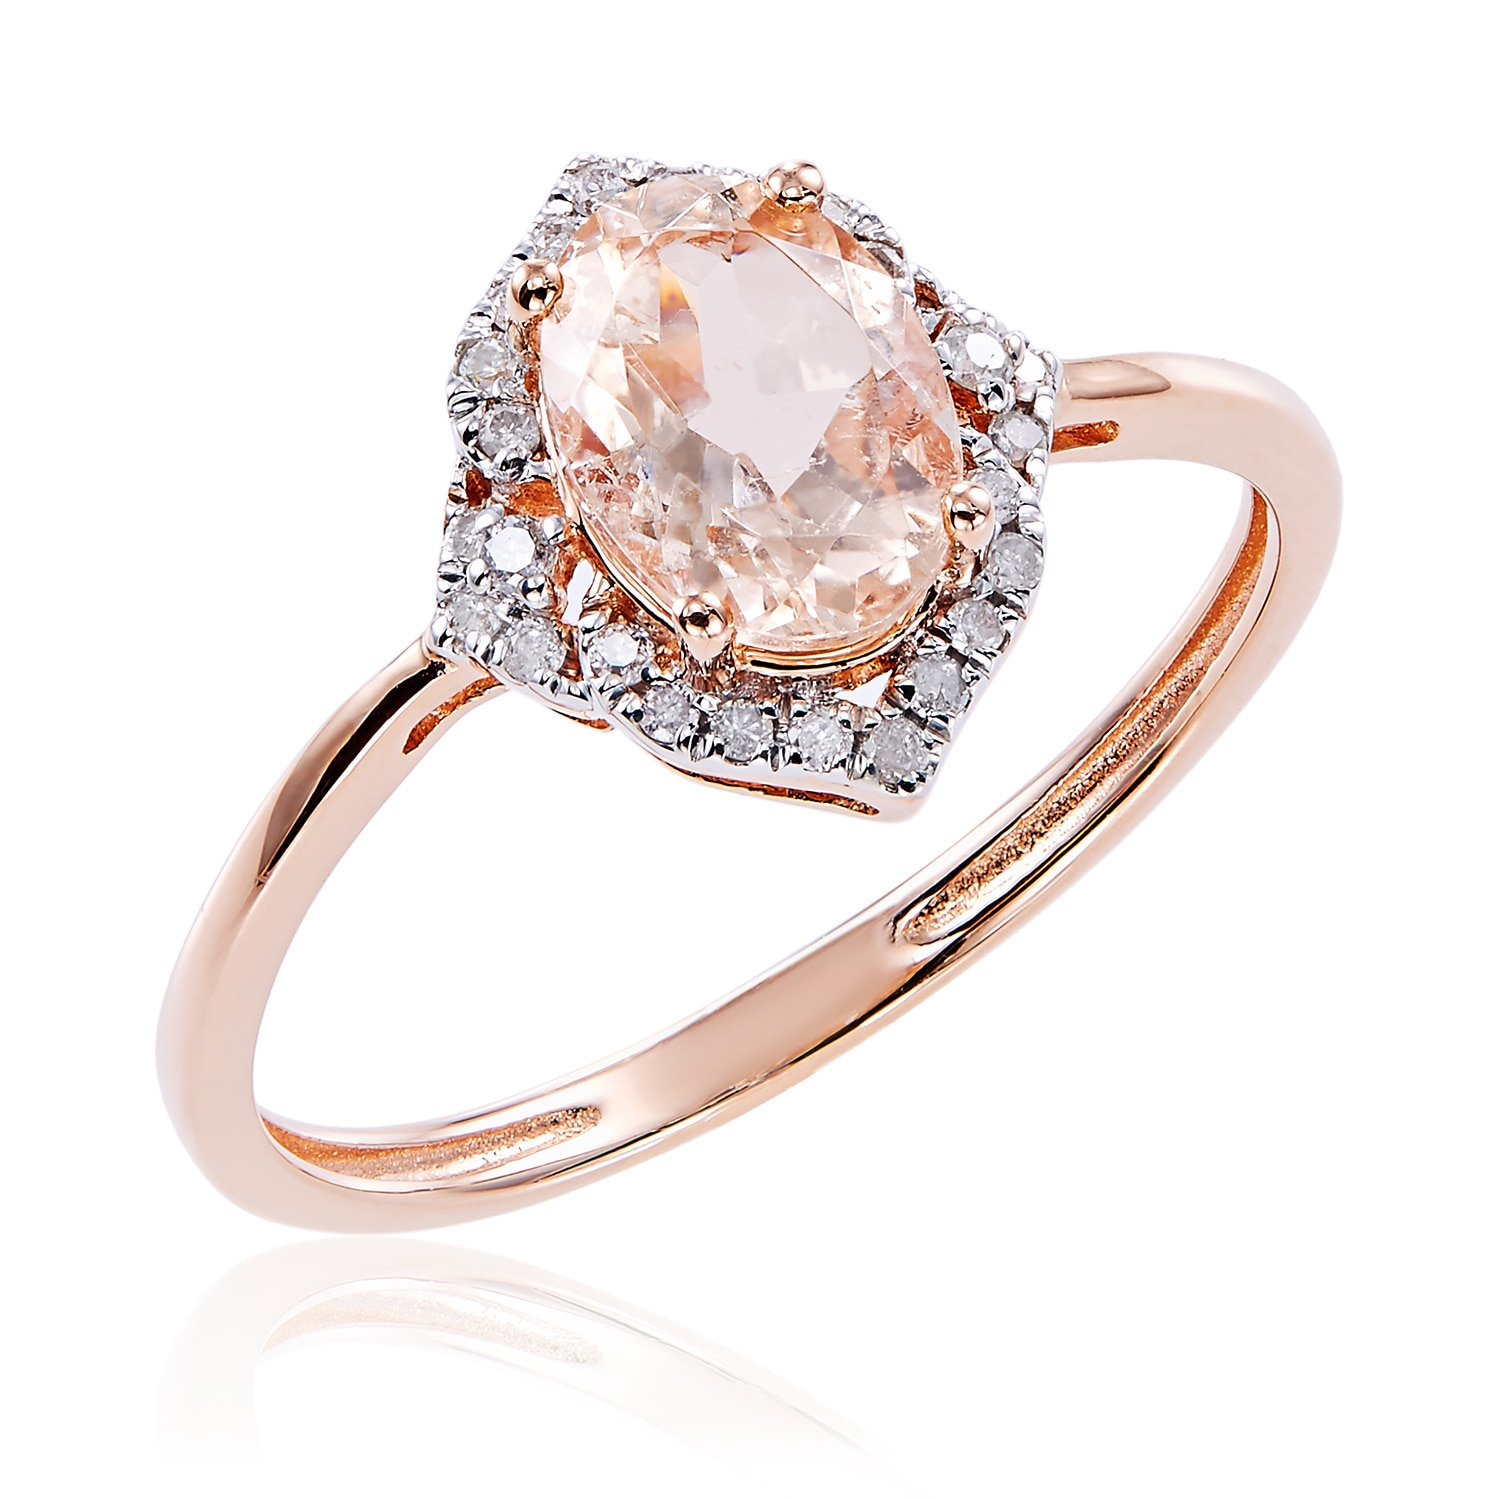 Size-5.75 G-H,I2-I3 Diamond Wedding Band in 10K Pink Gold 1//10 cttw,